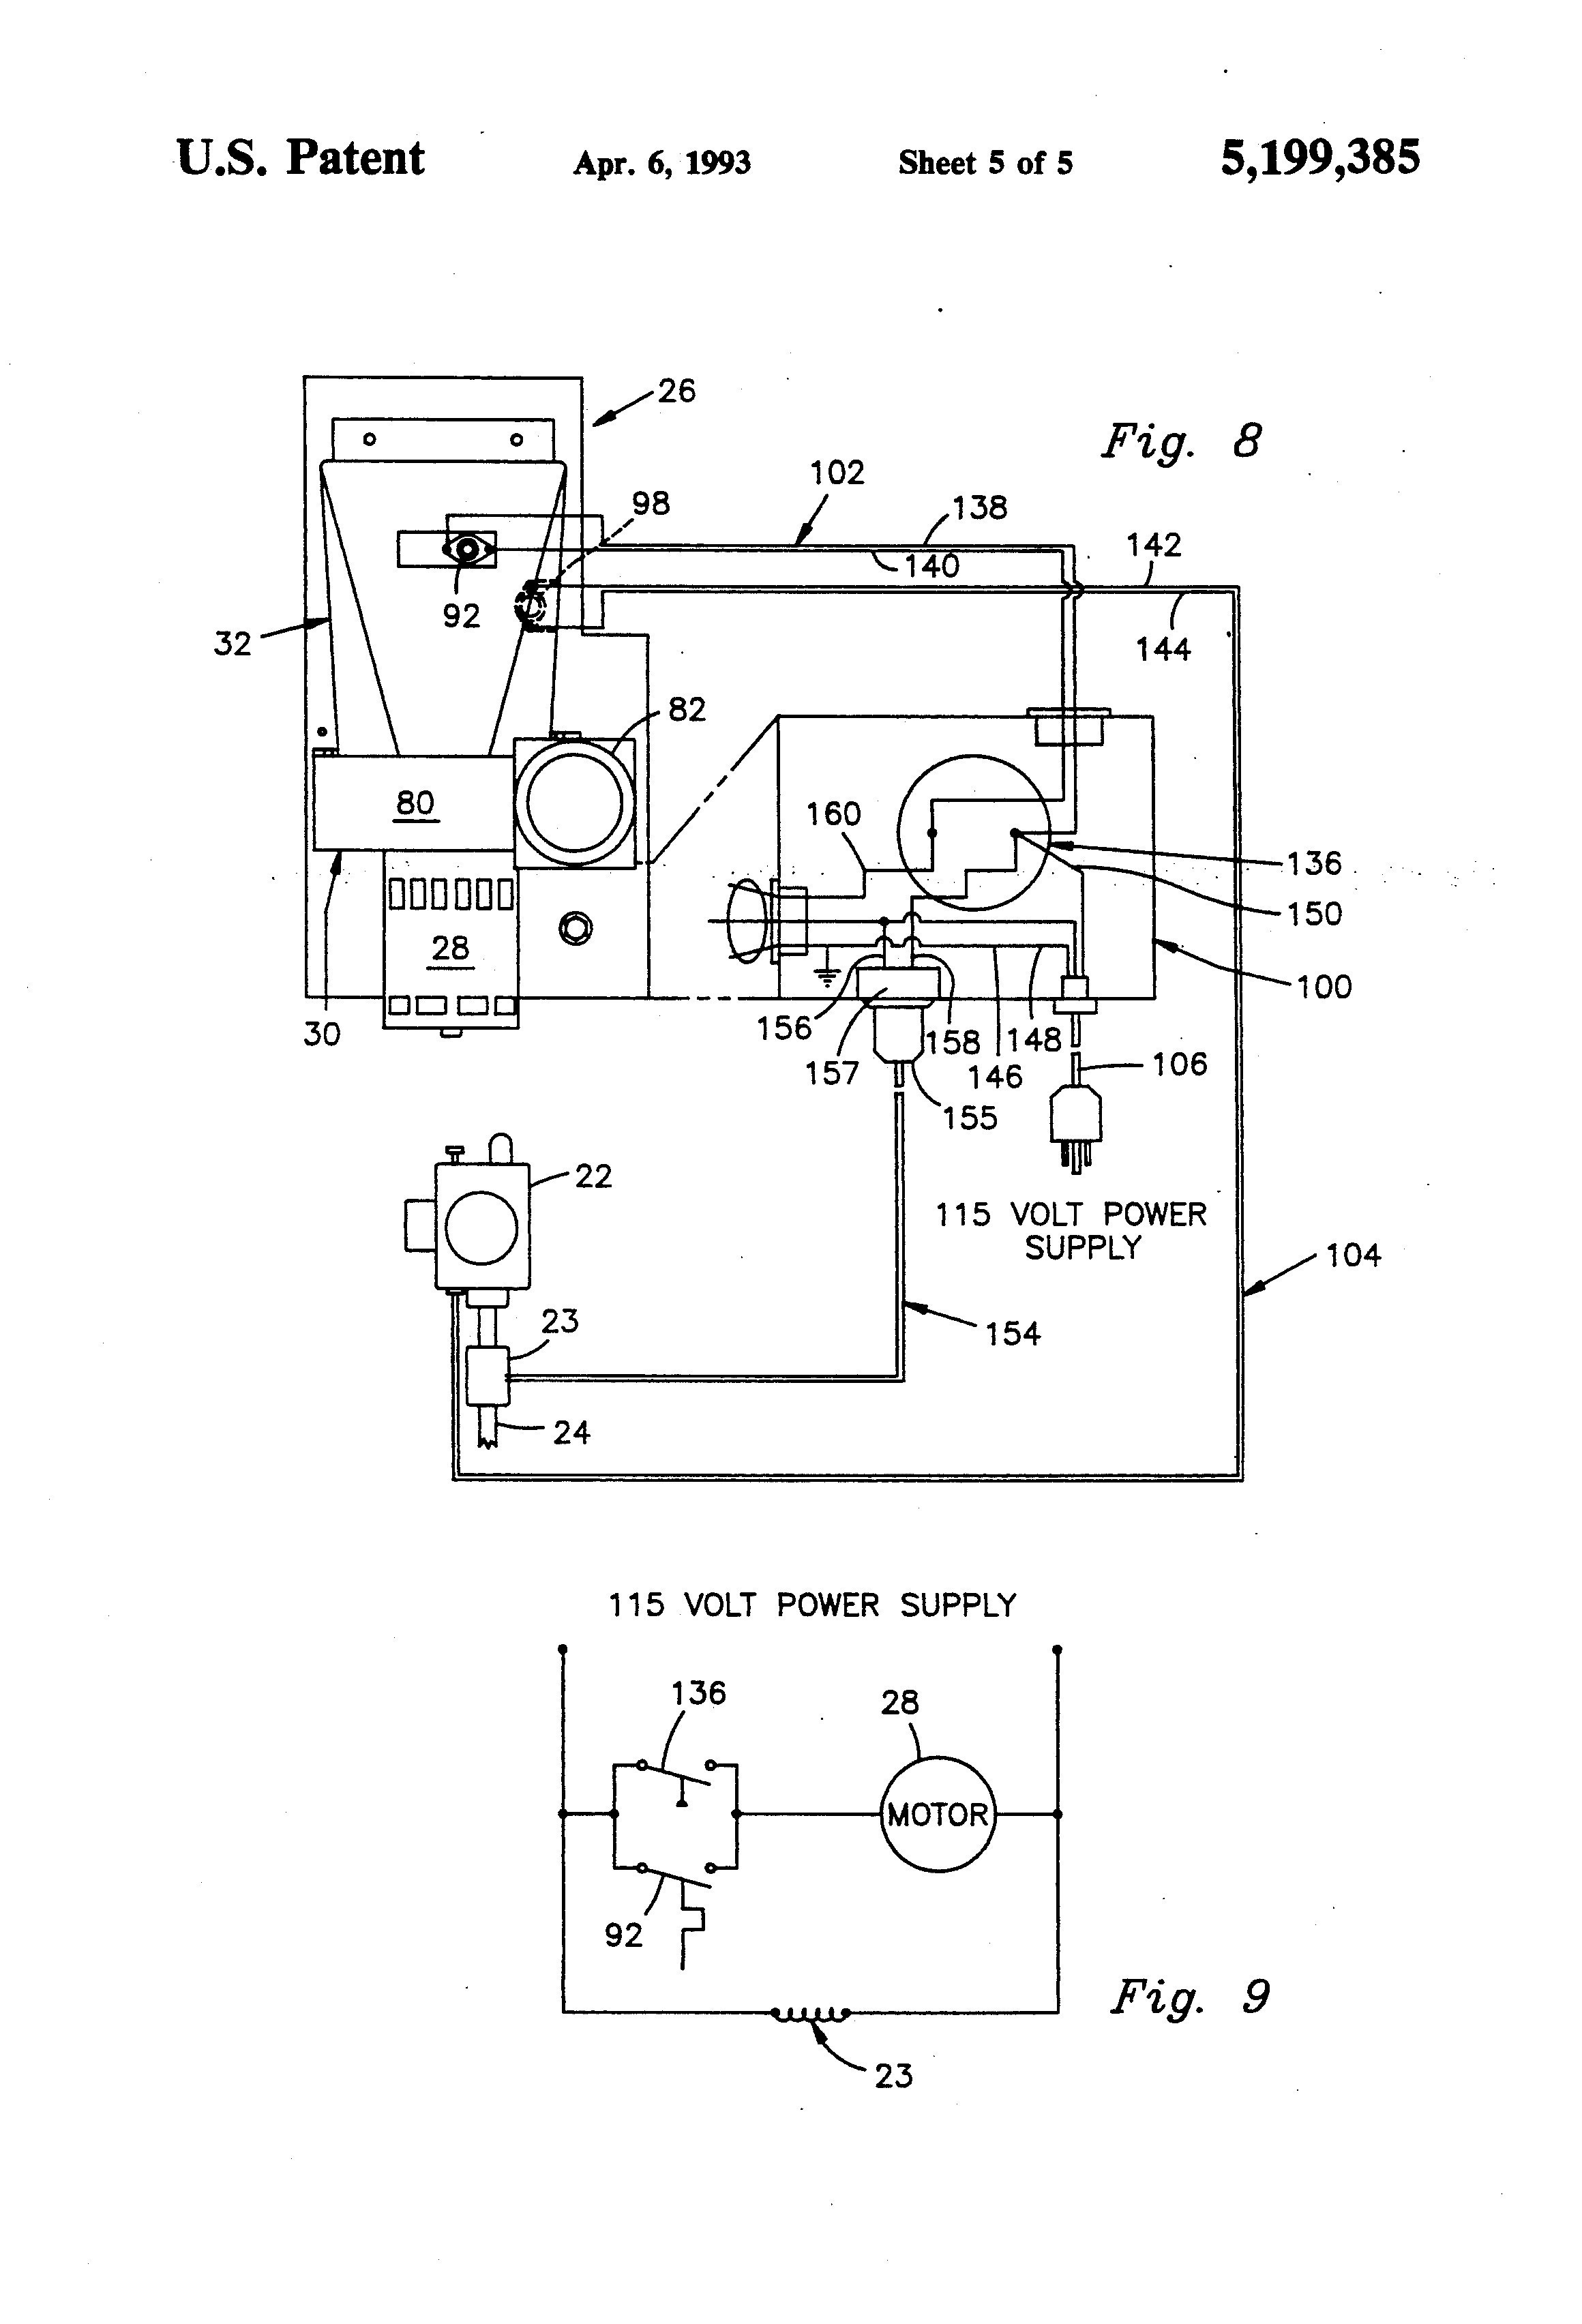 240V Baseboard Heater Thermostat Wiring Diagram   Wiring Library - 240 Volt Baseboard Heater Wiring Diagram